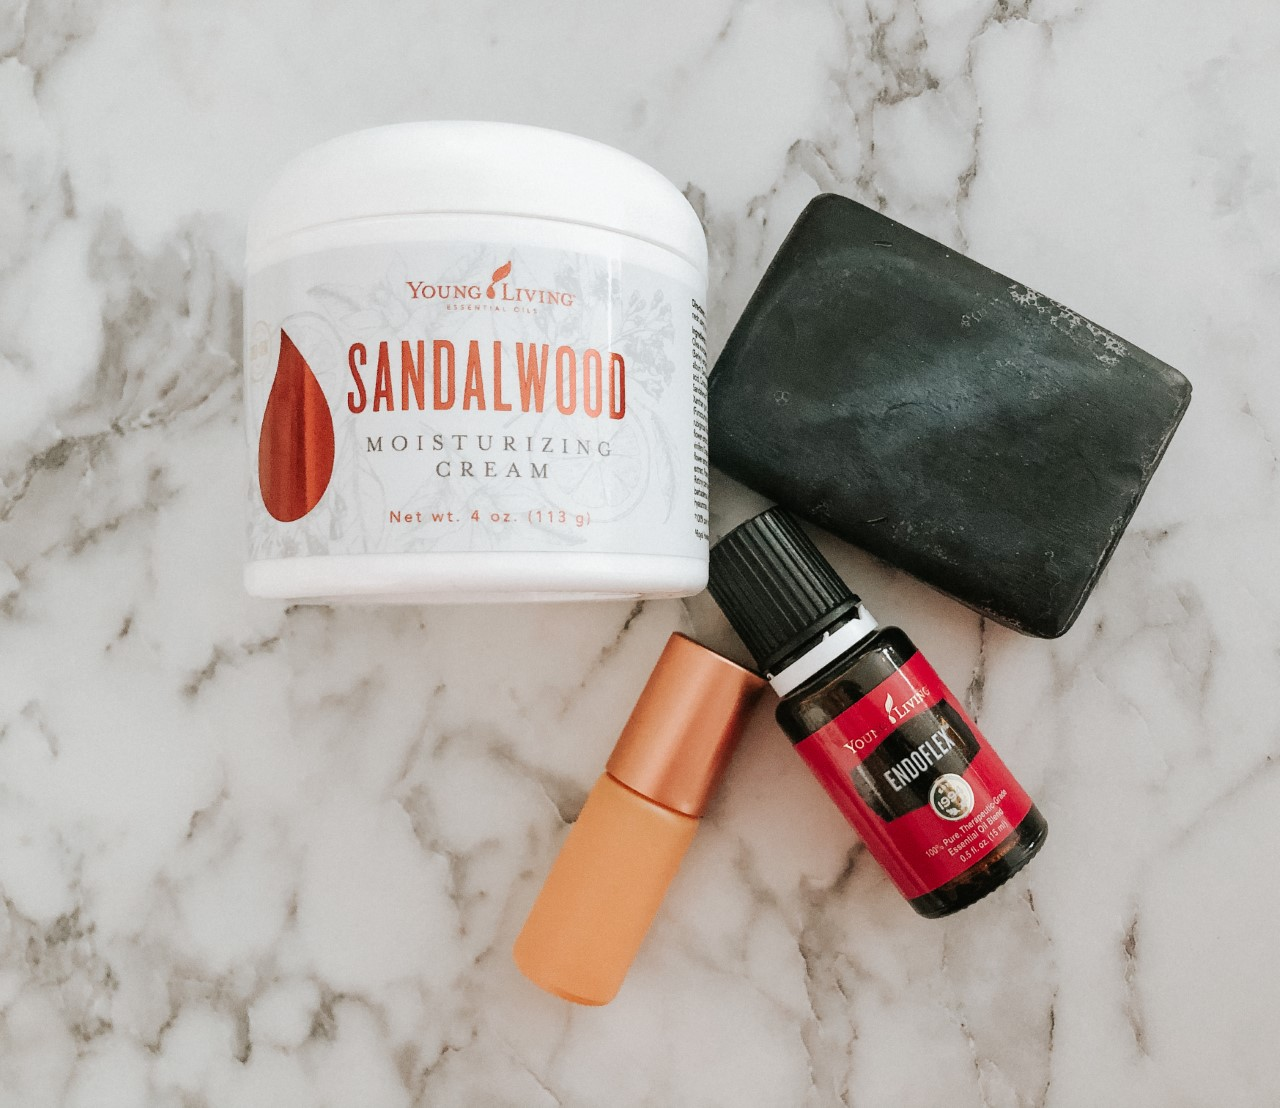 Young Living Sandalwood moisturizing cream with Endoflex essential oil and Dunes Roller Bottle Whimsy + Wellness